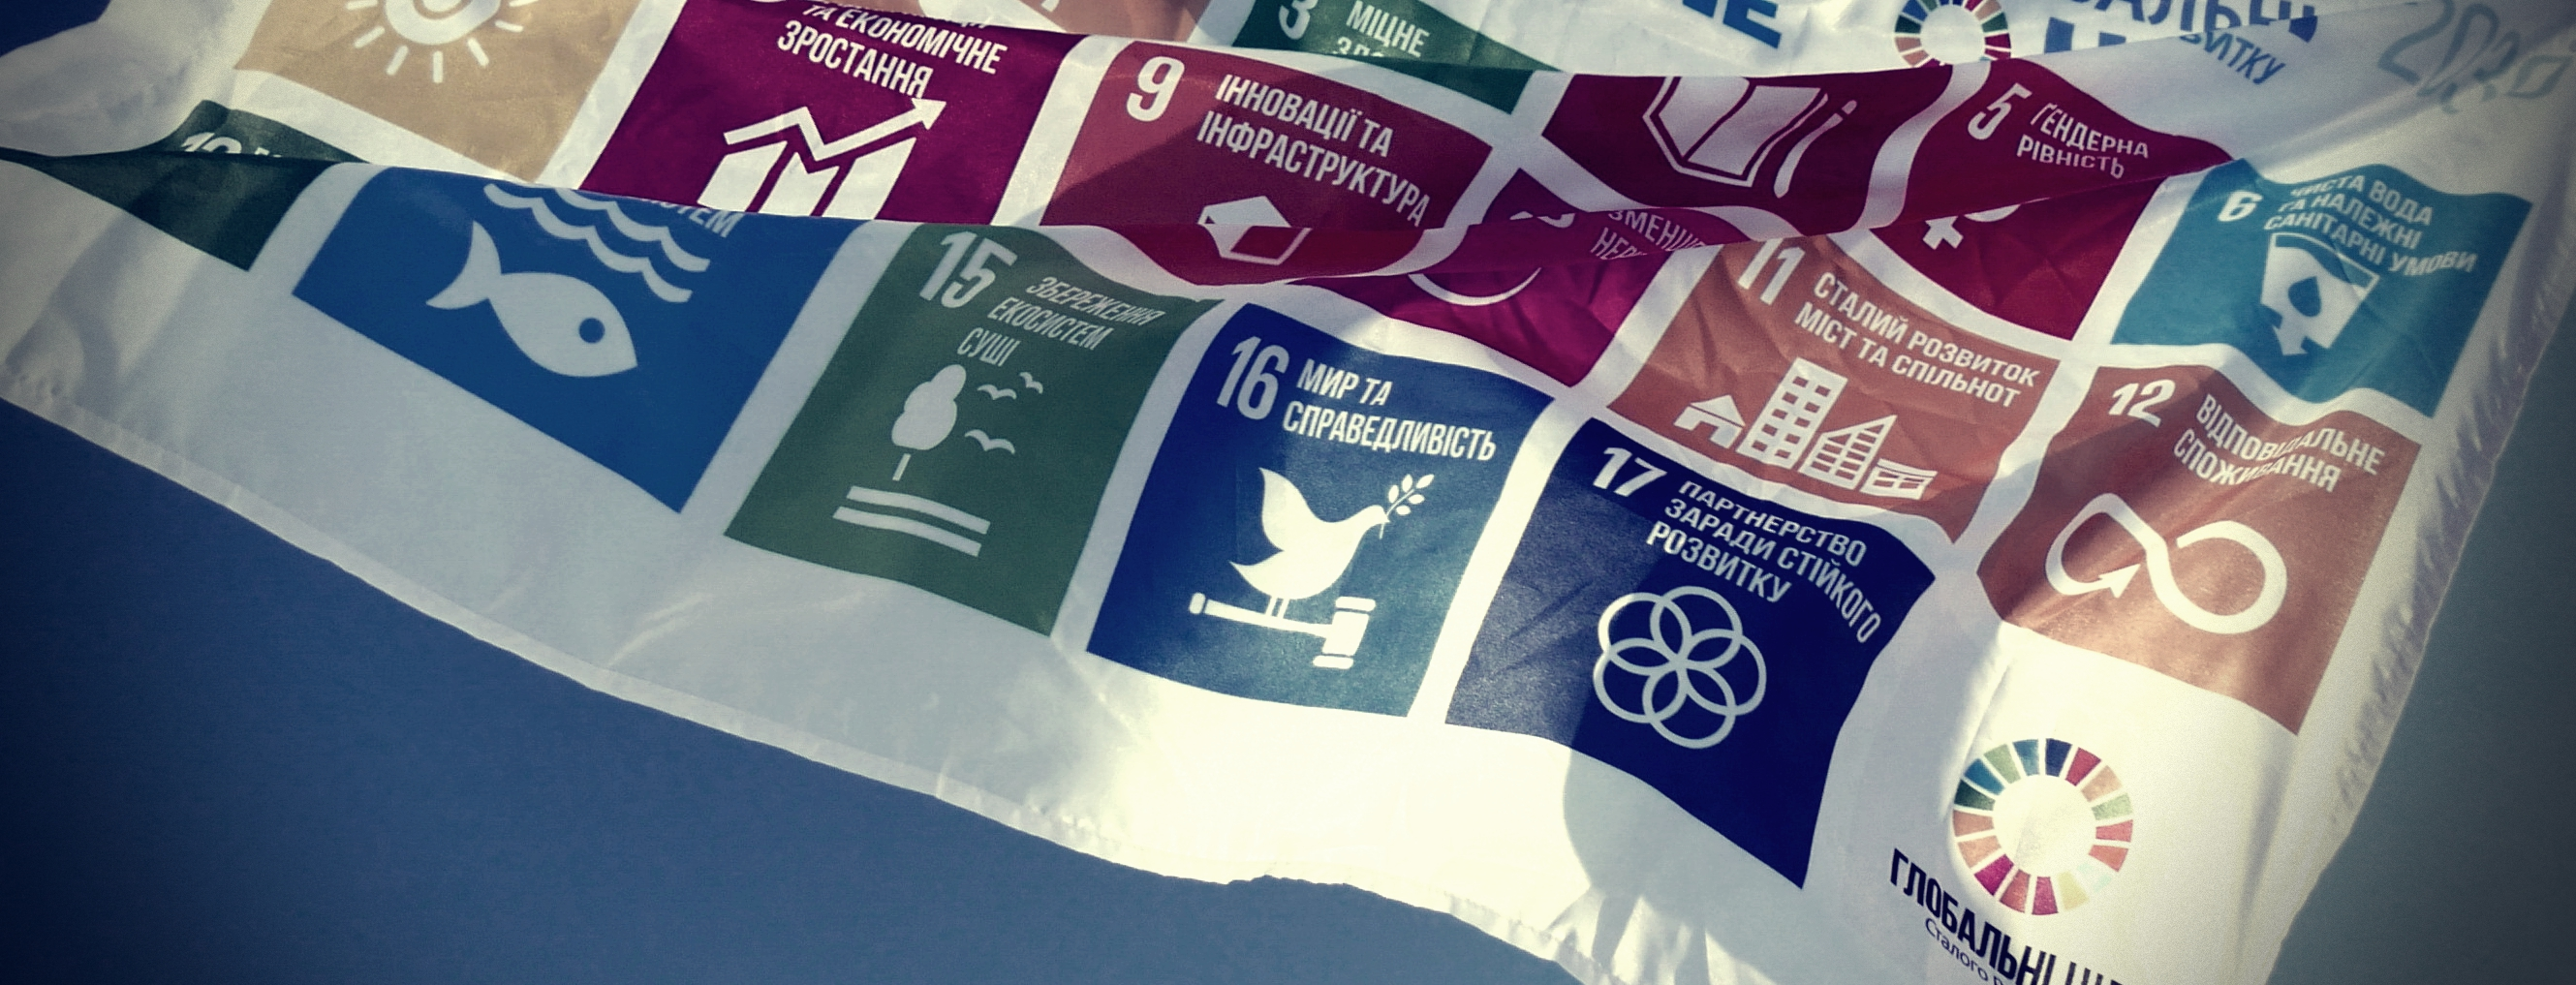 The Sustainable Development Goals: Elite Pluralism, not Democratic Governance